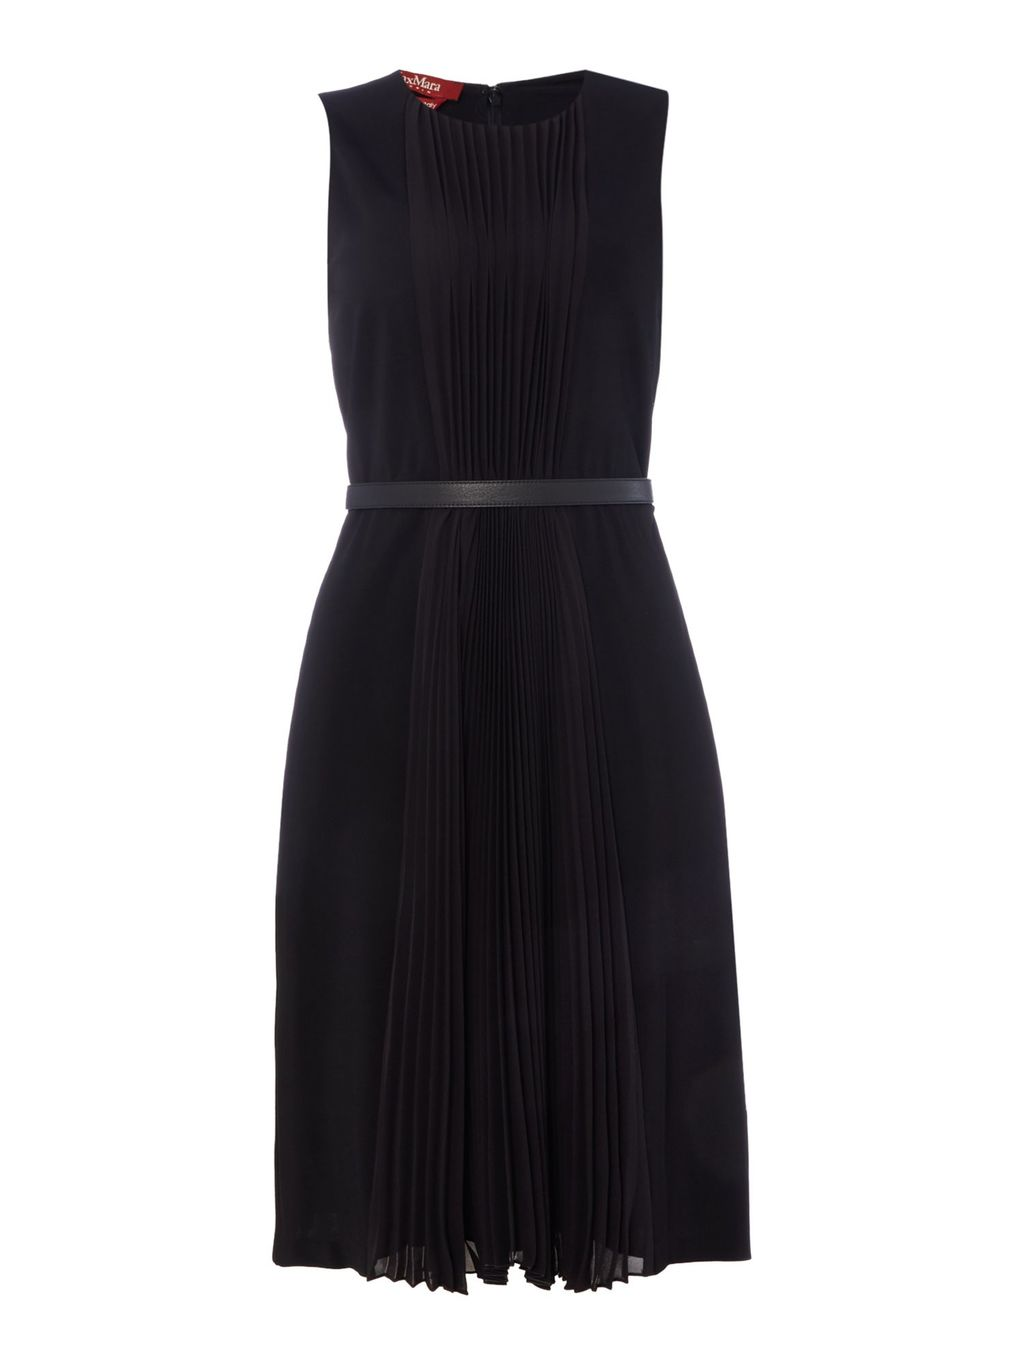 Marche Sleeveless Pleated Dress With Belt, Black - style: shift; neckline: round neck; fit: tailored/fitted; pattern: plain; sleeve style: sleeveless; waist detail: fitted waist; predominant colour: black; occasions: work, occasion; length: just above the knee; fibres: viscose/rayon - stretch; hip detail: subtle/flattering hip detail; sleeve length: sleeveless; pattern type: fabric; texture group: jersey - stretchy/drapey; season: s/s 2016; wardrobe: investment